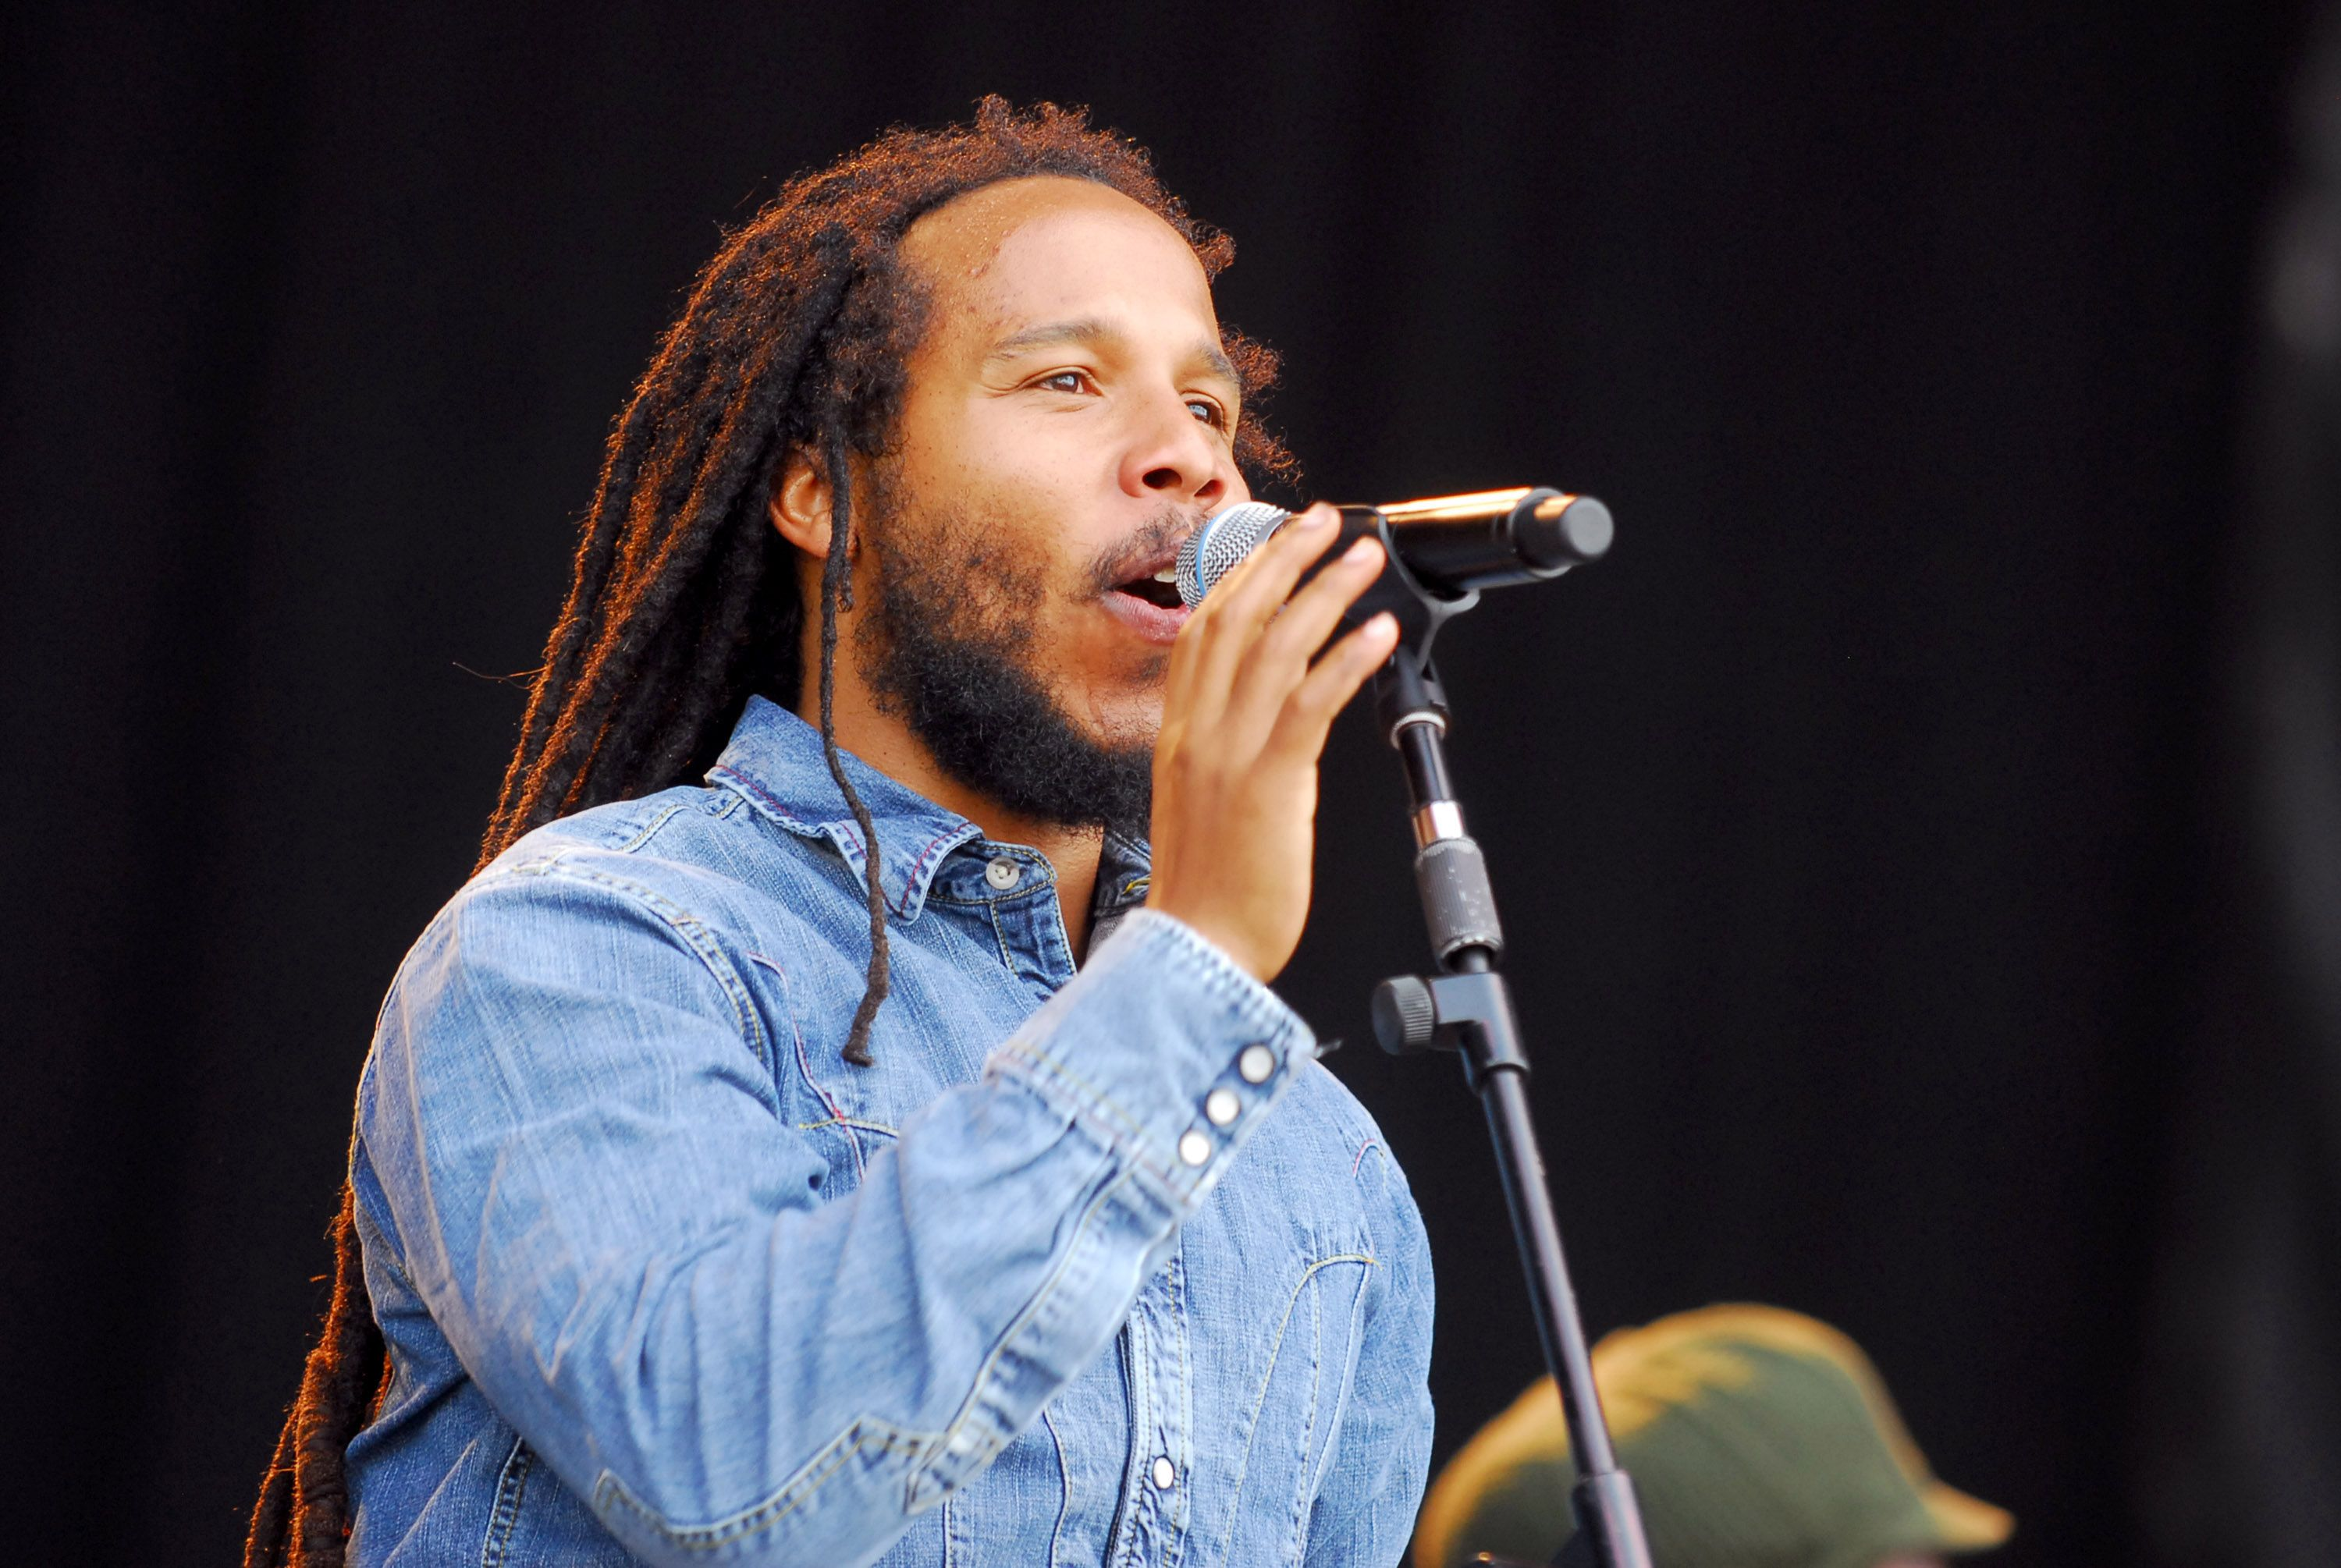 Ziggy Marley sings in Manchester, Tennessee, at the Bonnaroo Music and Arts Festival in 2007.   Source: Getty Images